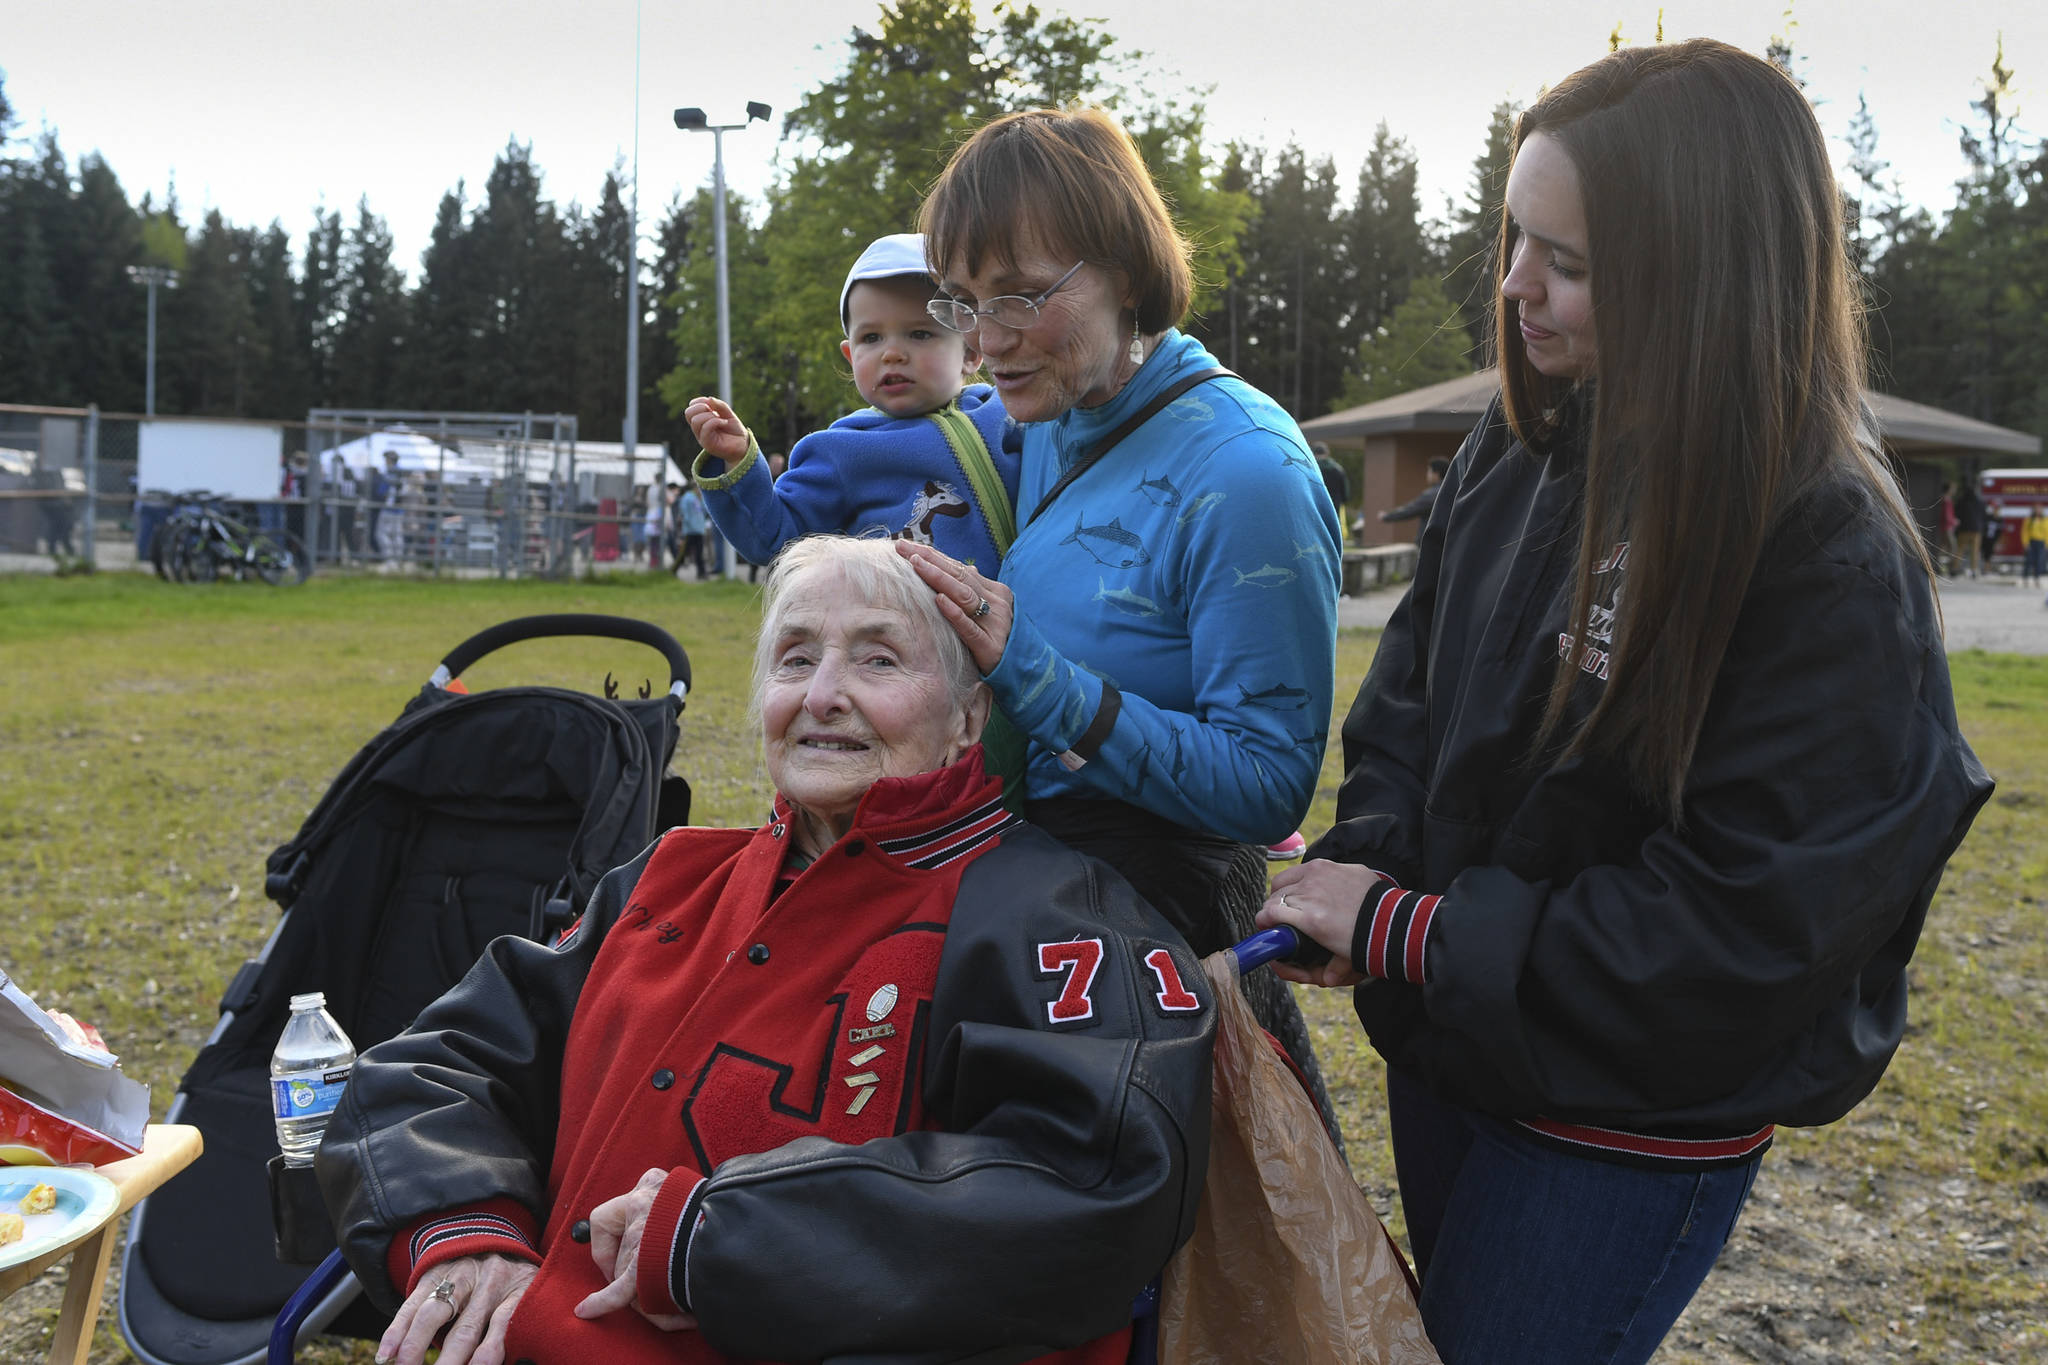 Charlotte Bain, 94, attends a tailgate party with her daughter, Claudia Bain, her granddaughter, Megan White, and her great-granddaughter, Louisa White, 21 months, before the Juneau Alumni Football Game with football players, dance team members and cheerleaders from Juneau-Douglas and Thunder Mountain High Schools at Adair-Kennedy Memorial Field on Friday, May 24, 2019. They were there to support Bain's grandson, James, who was playing for the Juneau Legends. White graduated in 2000. (Michael Penn | Juneau Empire)